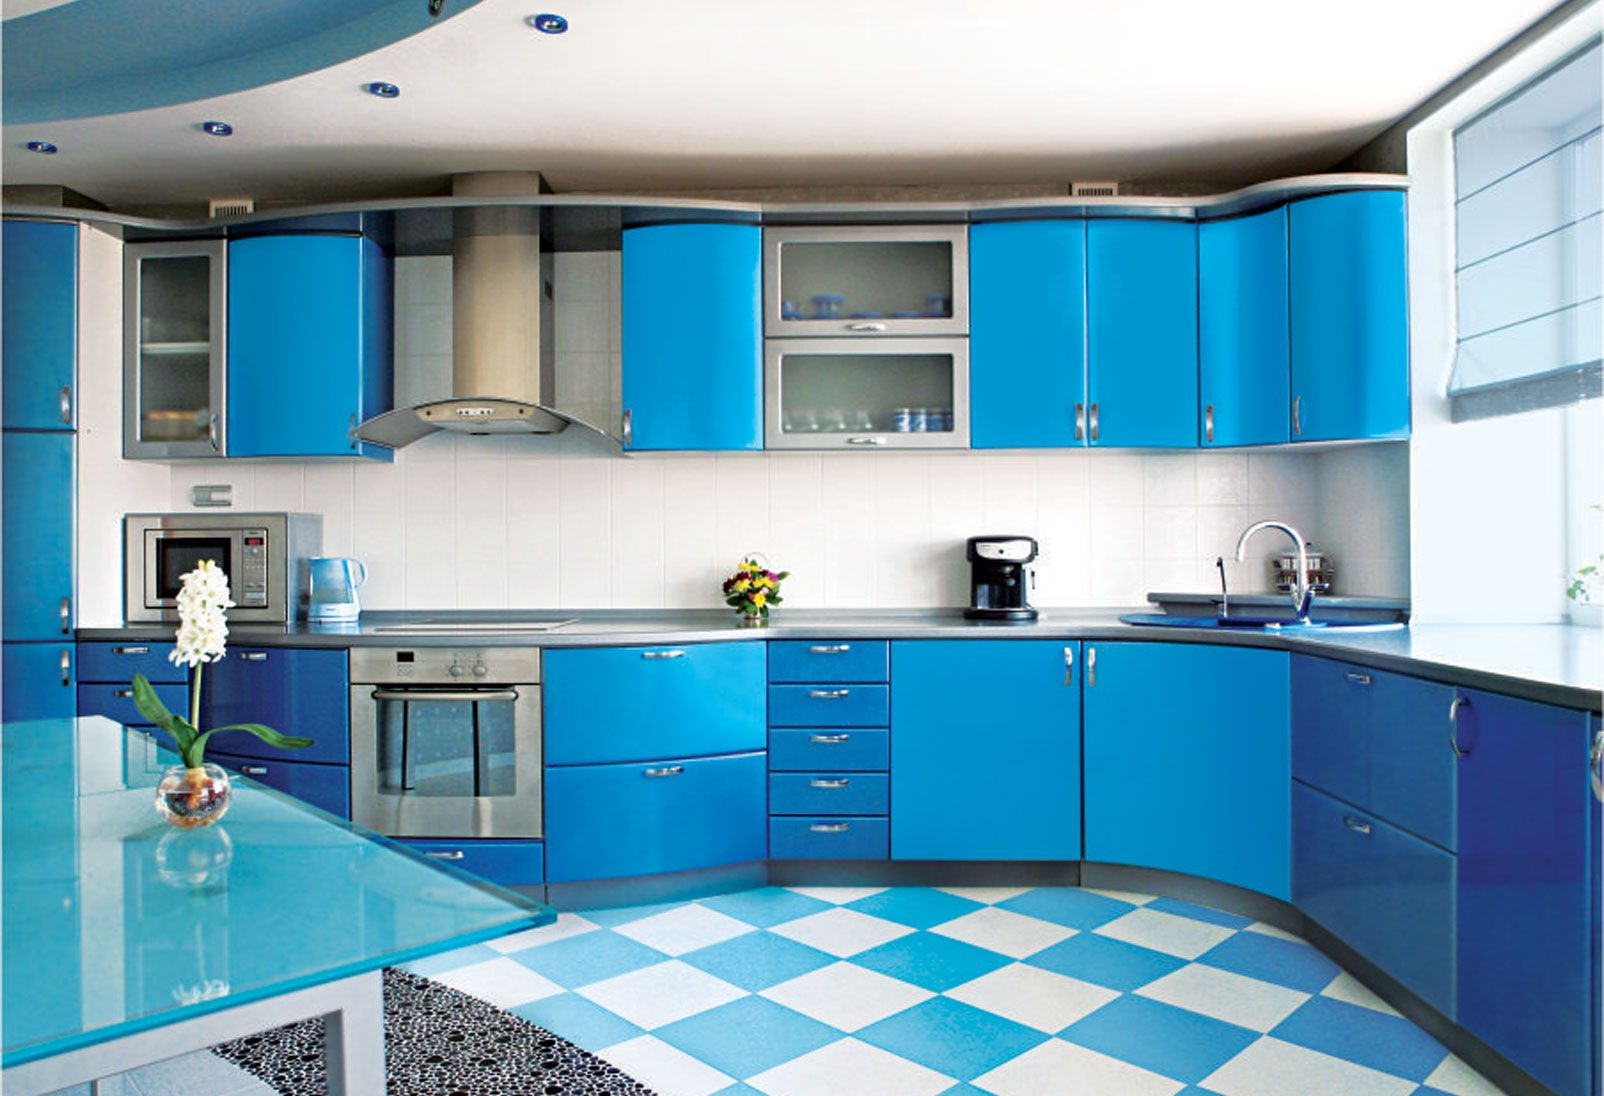 Kitchen Modular Designs India - emiliesbeauty.com -